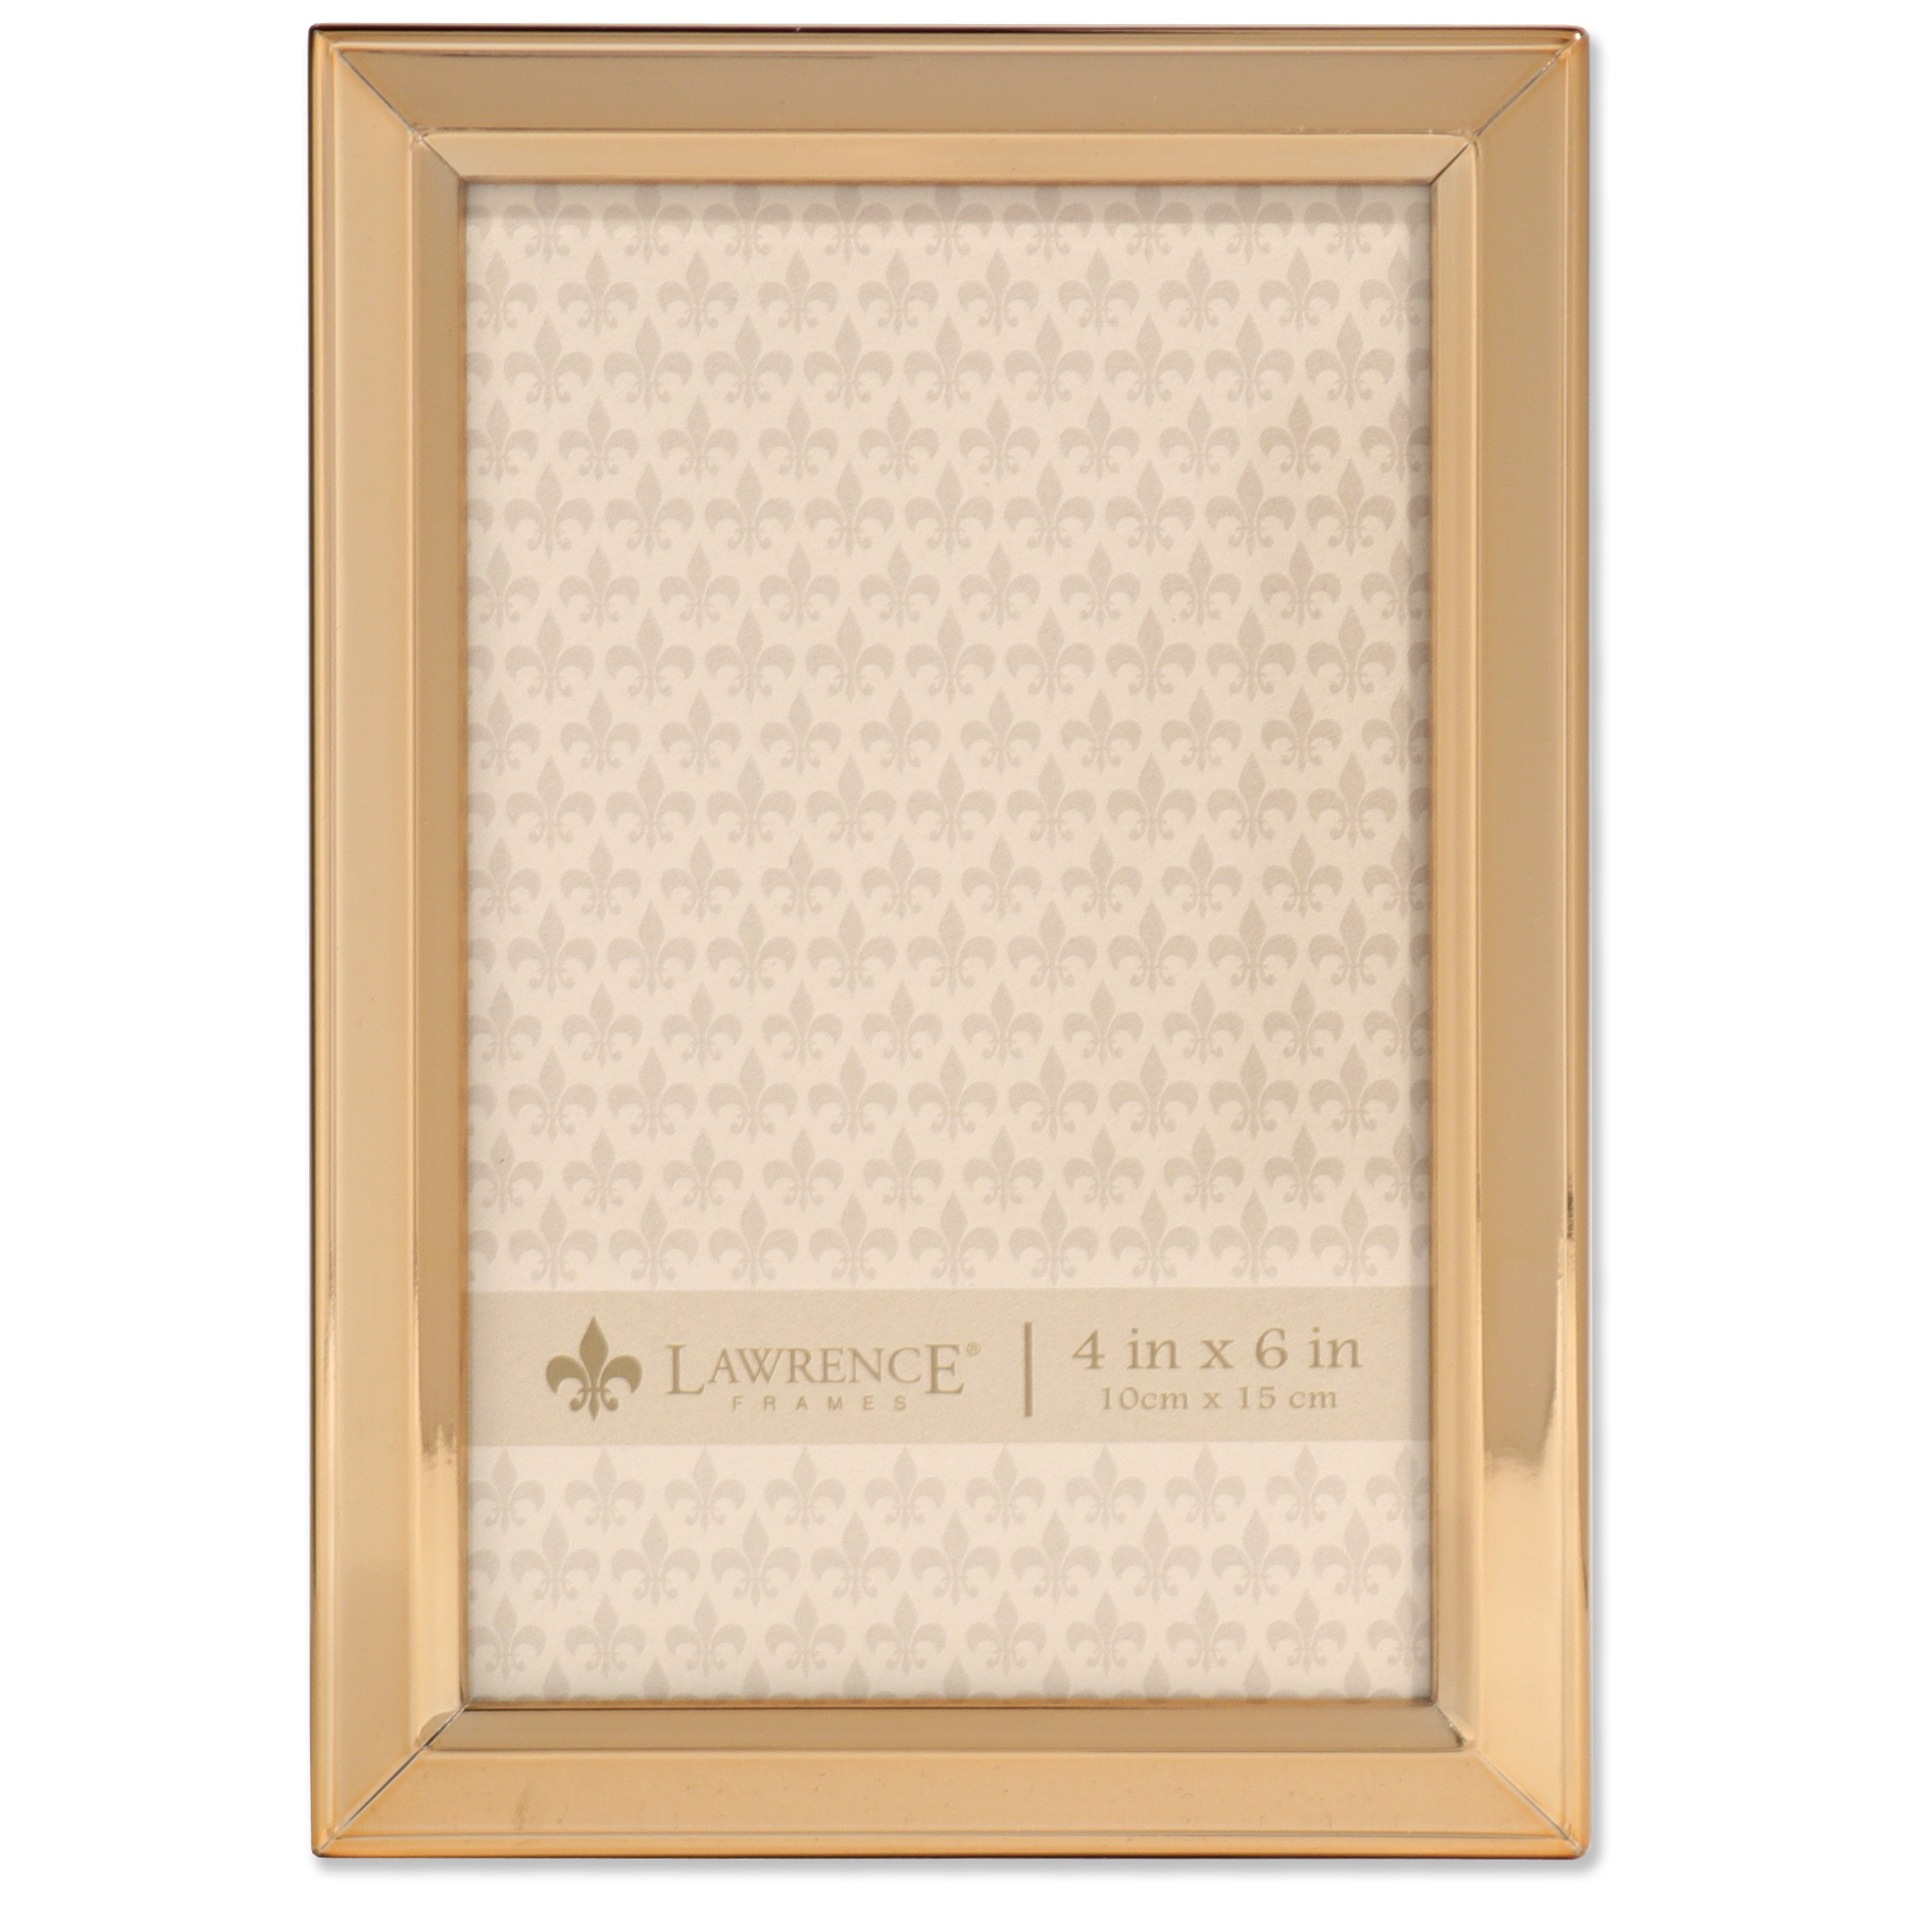 4x6 Gold Metal Picture Frame - Classic Bevel | PhotoFrames.net